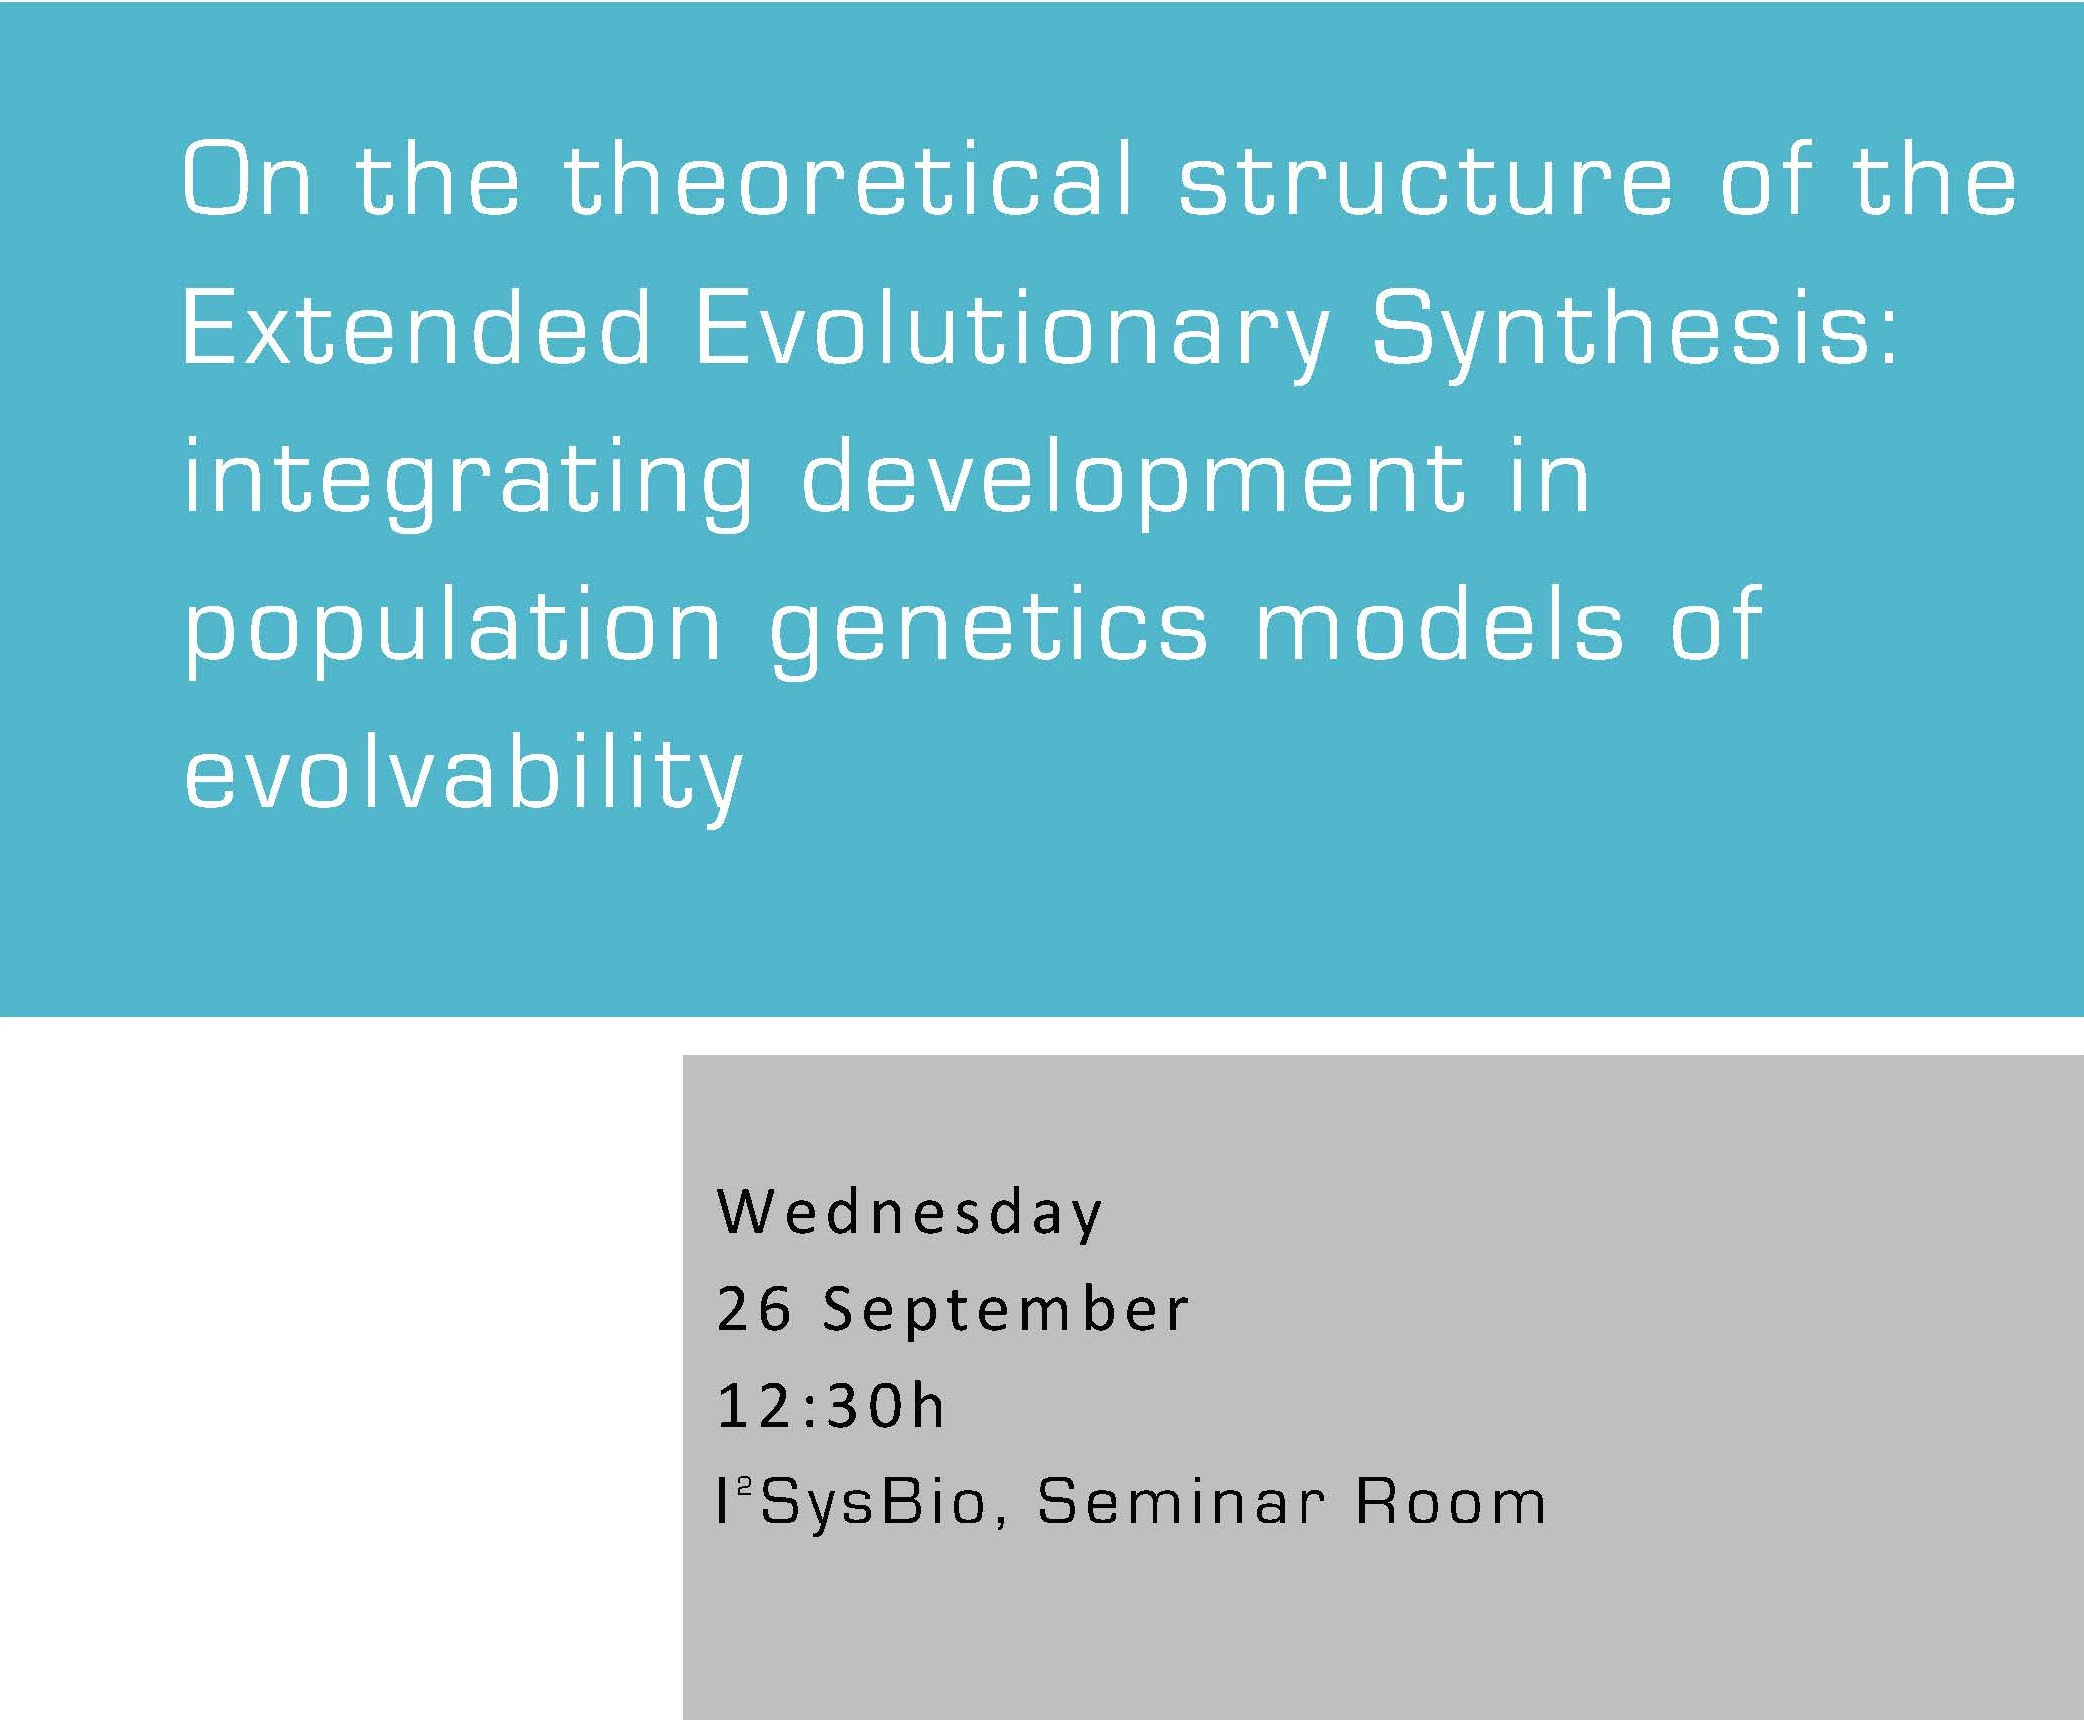 On the theoretical structure of the Extended Evolutionary Synthesis: integrating development in population genetics models of evolvability